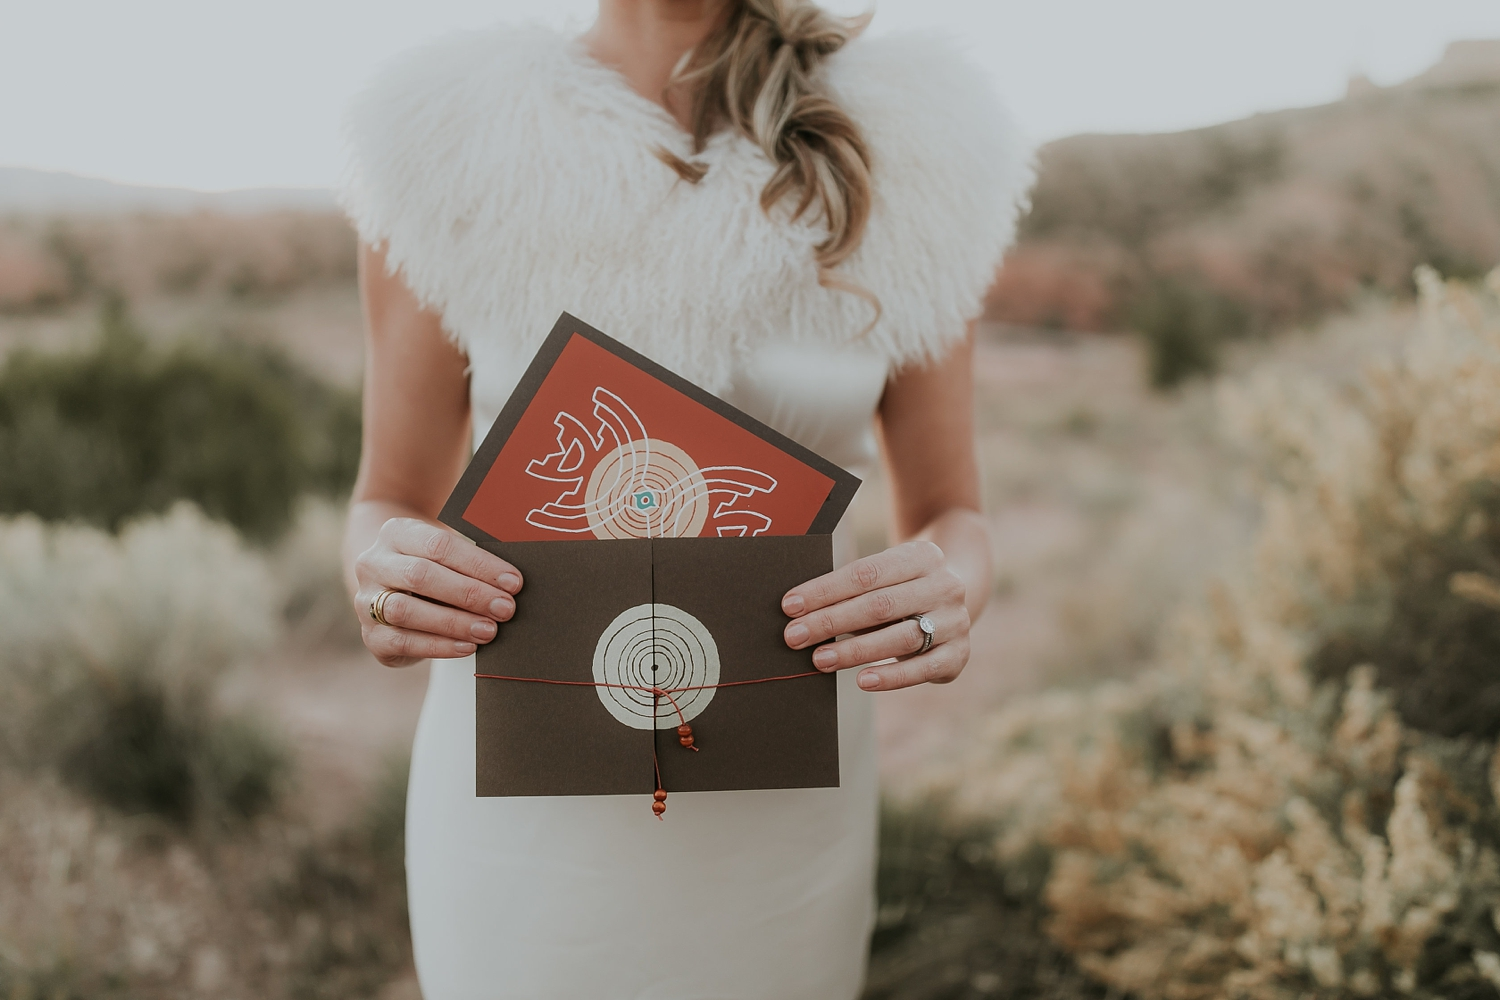 Alicia+lucia+photography+-+albuquerque+wedding+photographer+-+santa+fe+wedding+photography+-+new+mexico+wedding+photographer+-+new+mexico+ghost+ranch+wedding+-+styled+wedding+shoot_0081.jpg